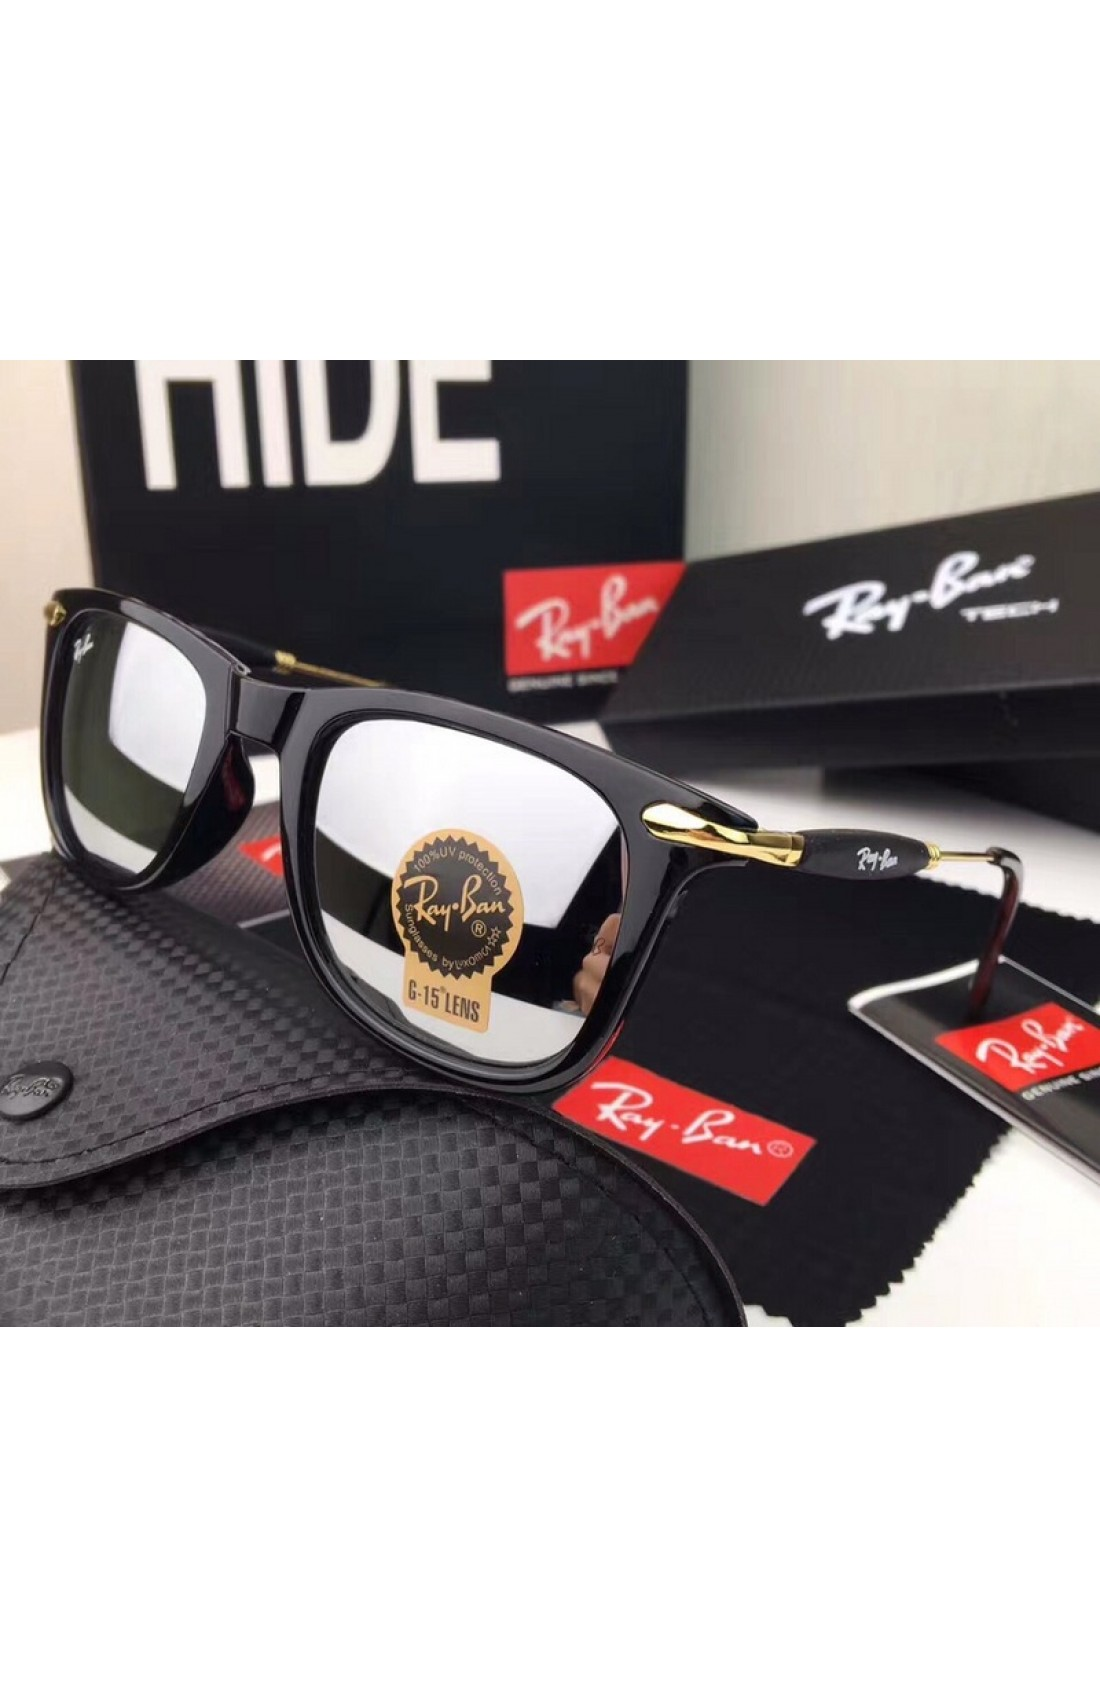 db090dc135 Clearance Sale Men s Women s Ray Ban RB2148 Sunglasses Silver Lenses Black  Frame